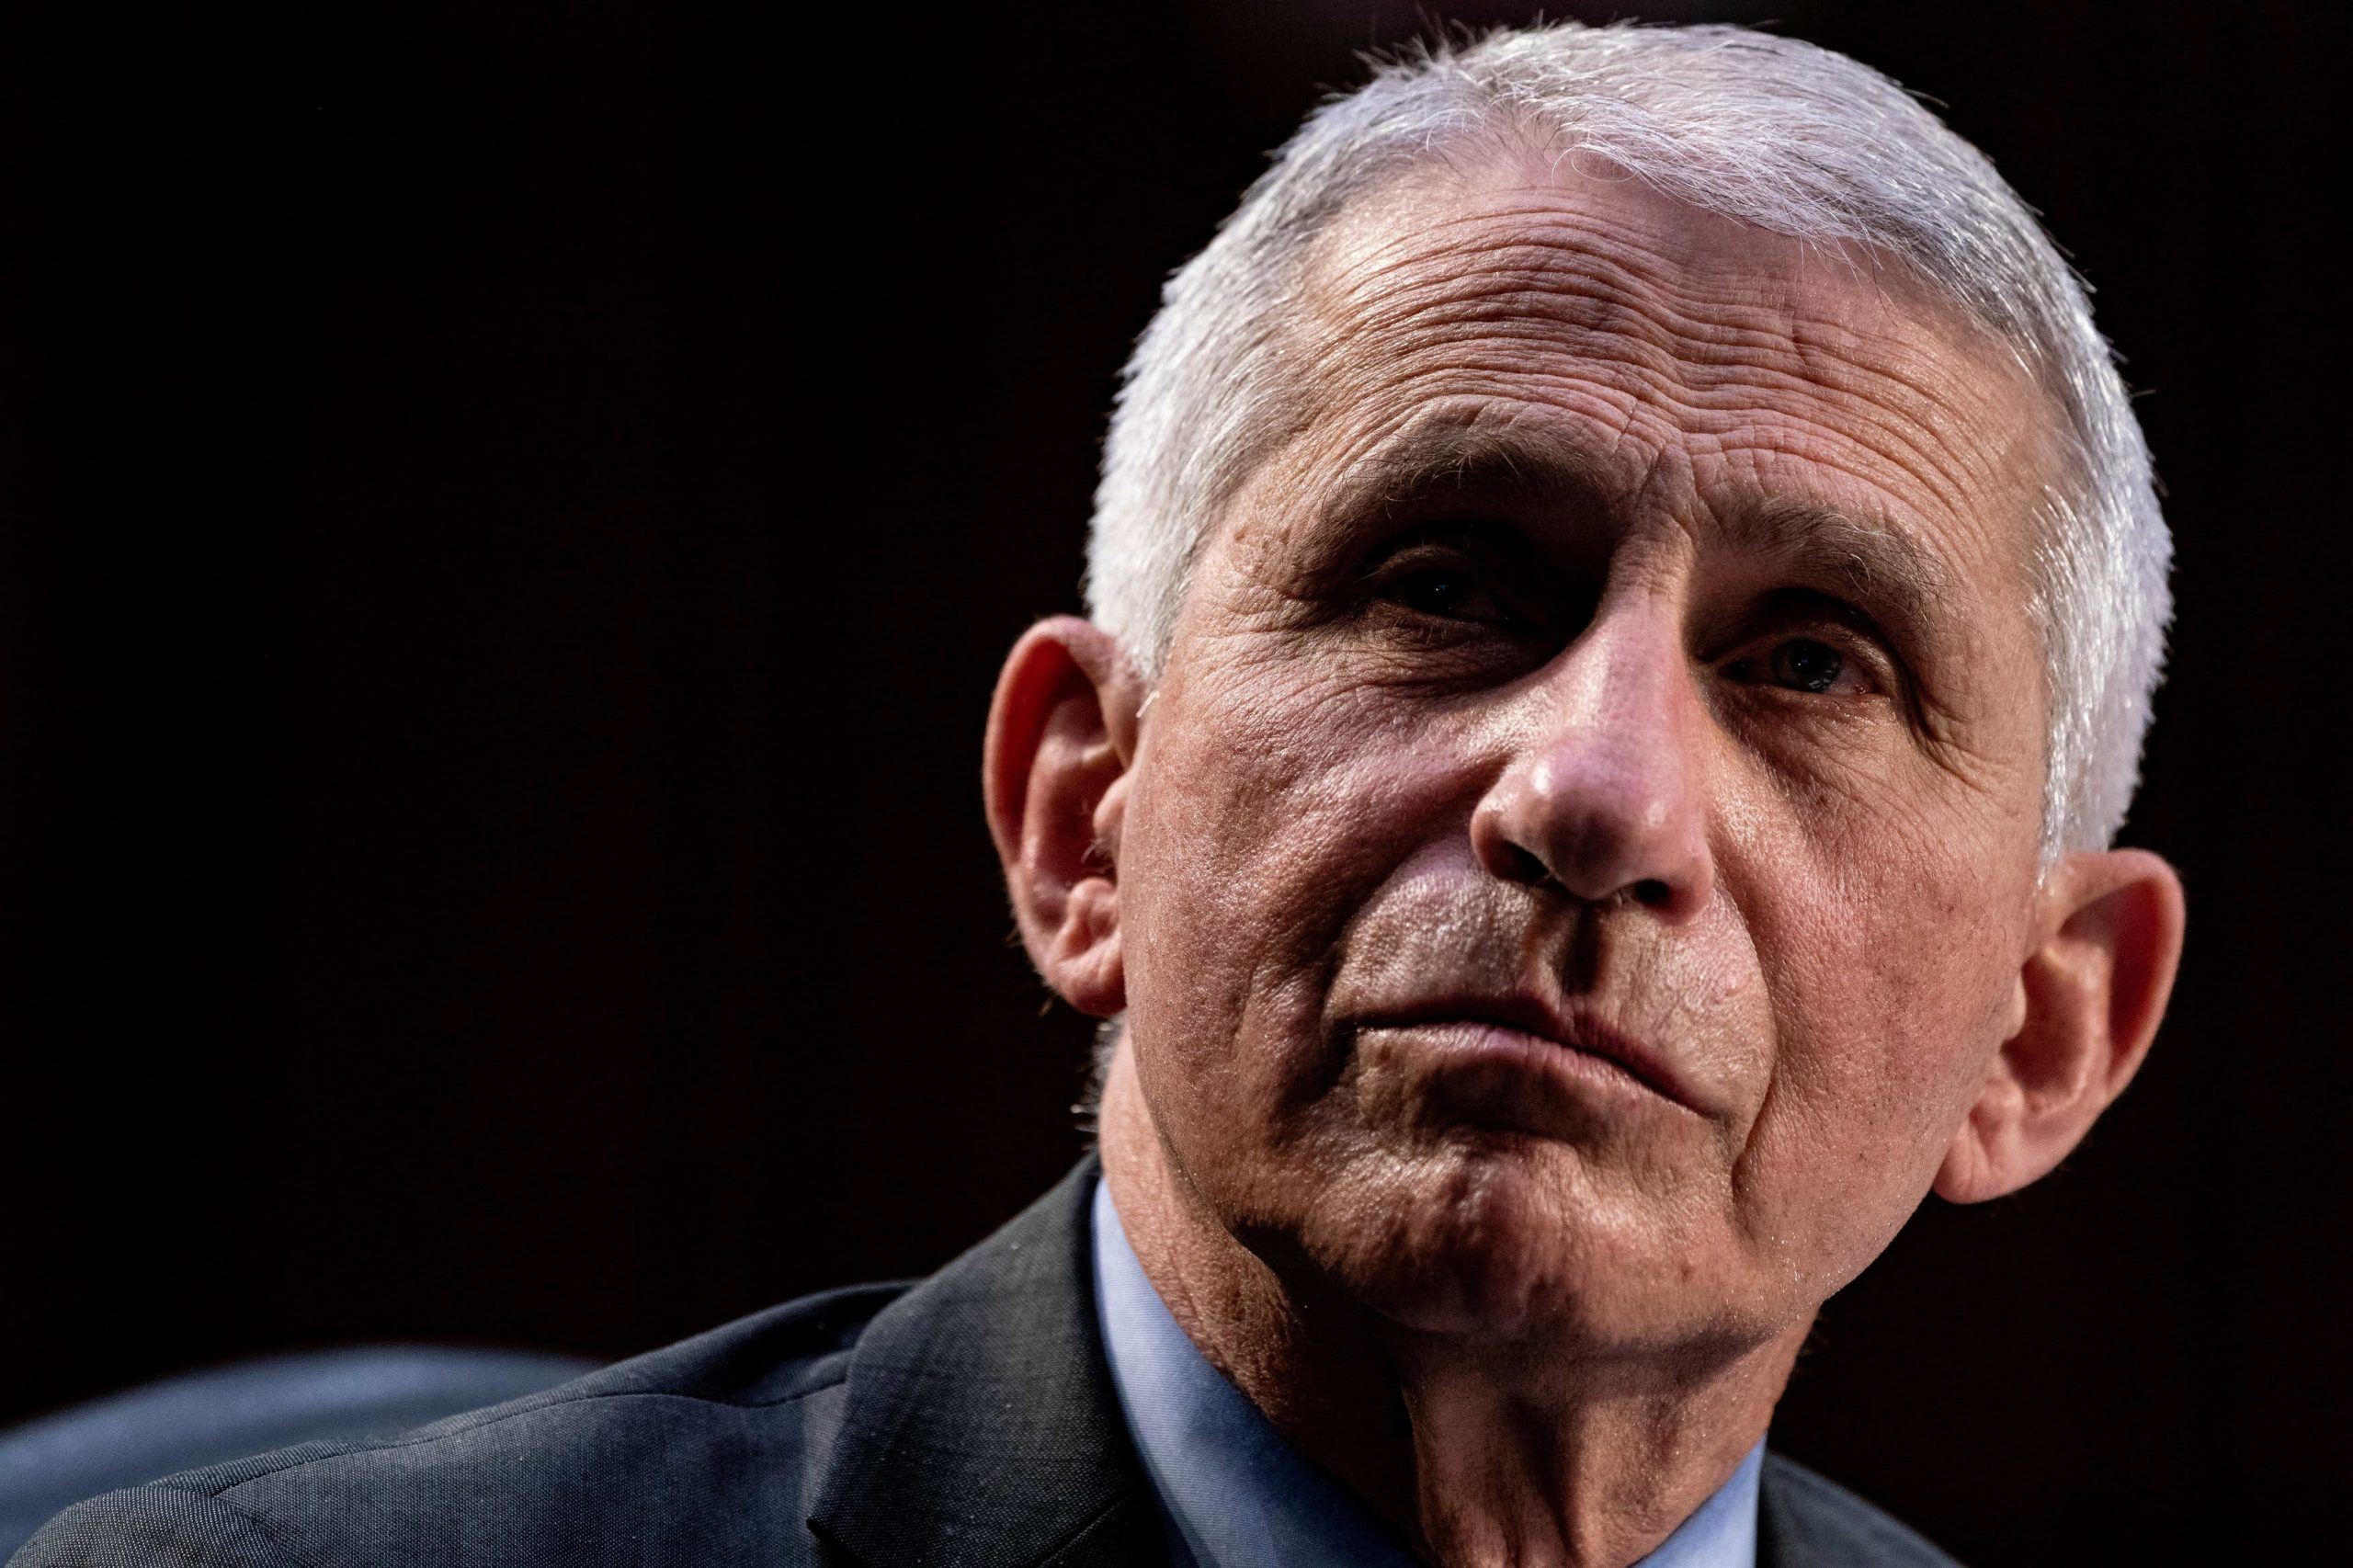 Fauci's 2,000 emails a day show how little U.S. officials knew in the early days of the Covid pandemic